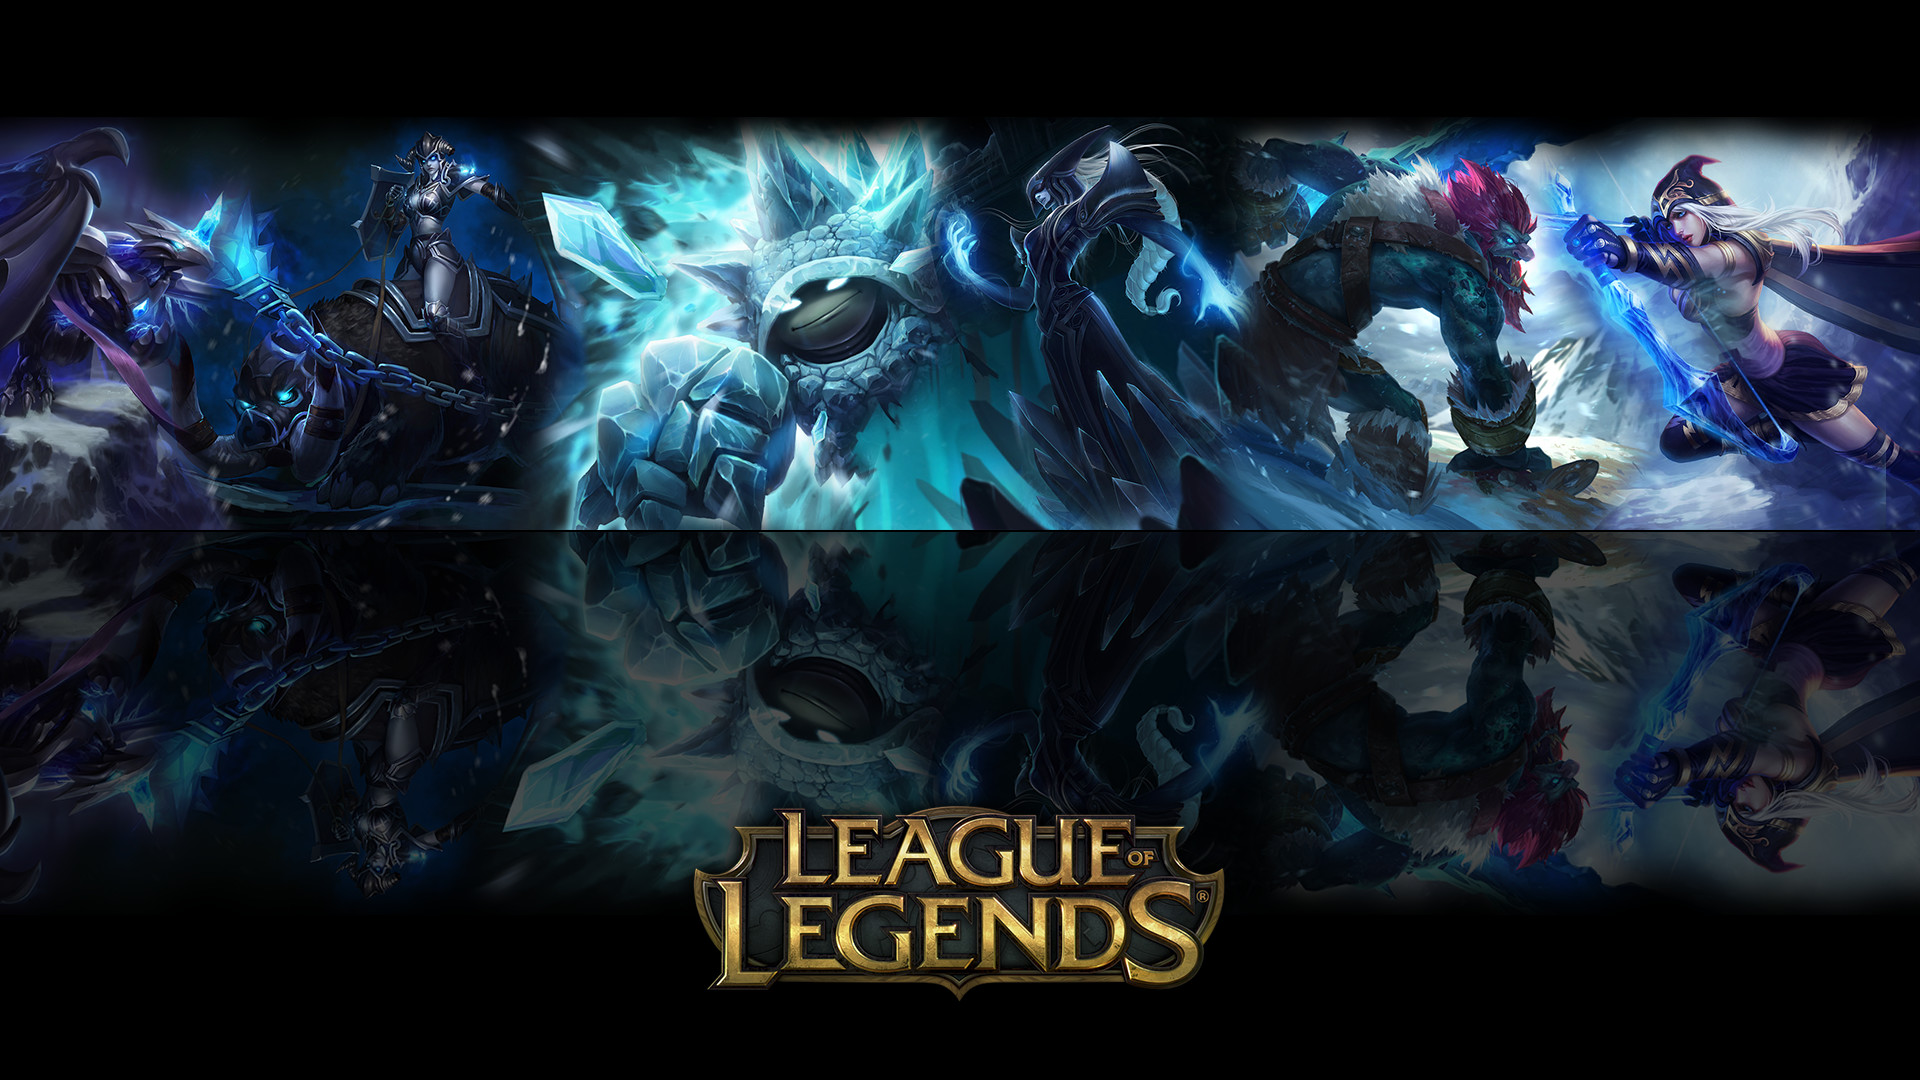 Wallpaper League of legends by ViciousBlue Wallpaper League of legends by  ViciousBlue